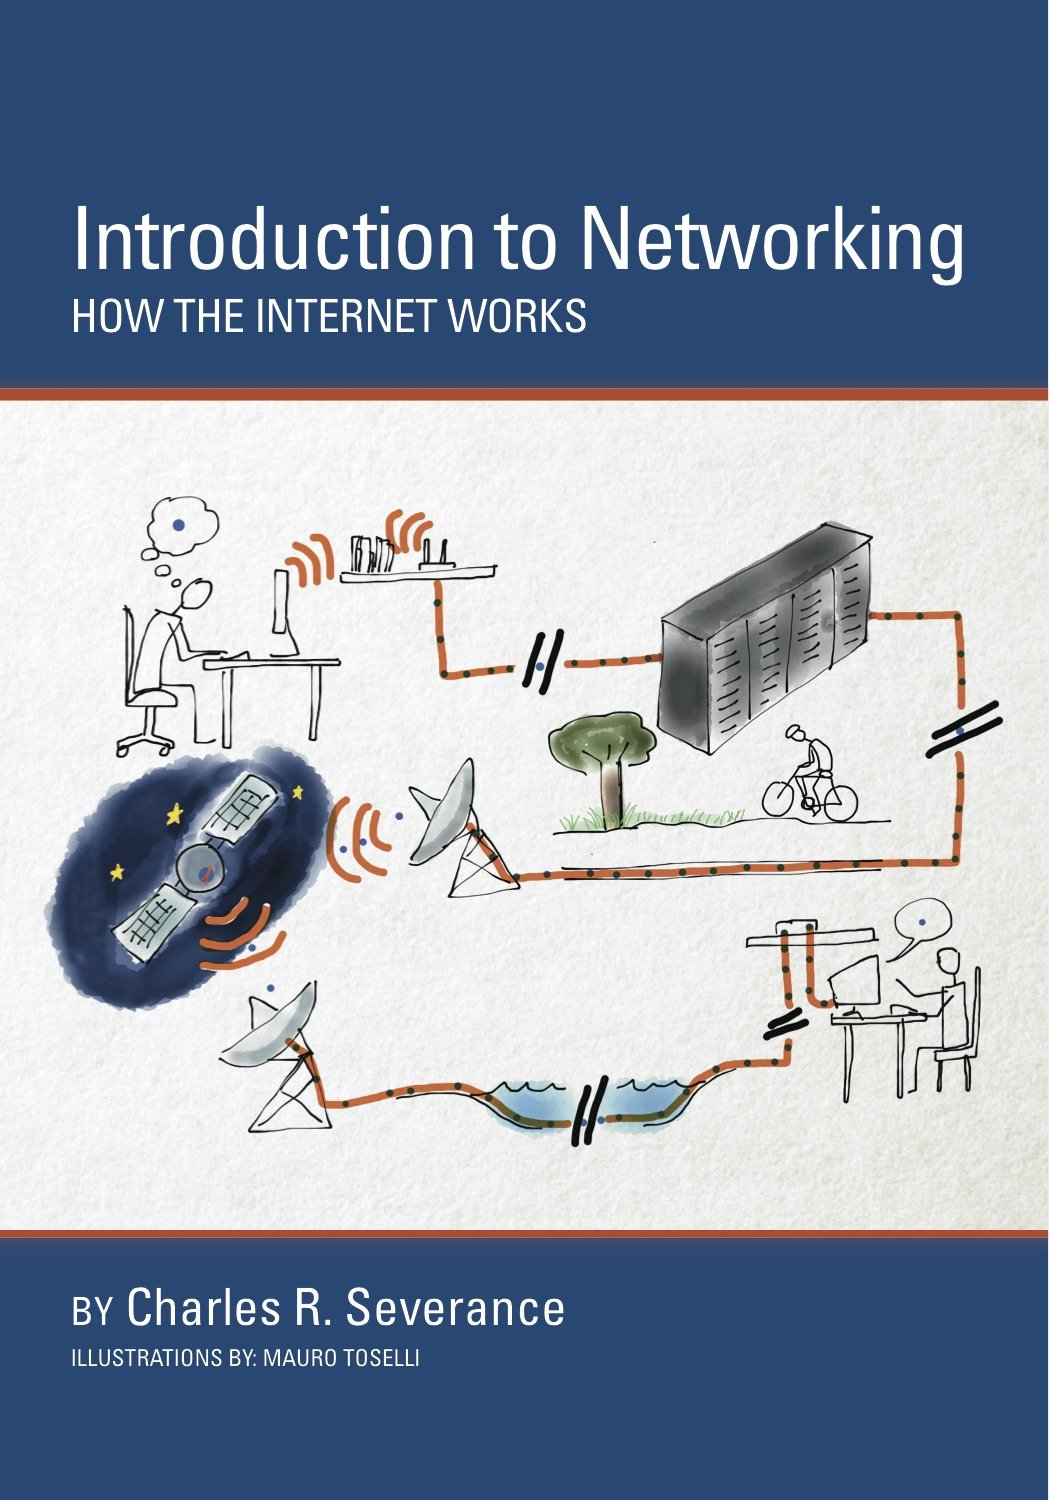 Image OfIntroduction To Networking: How The Internet Works (English Edition)